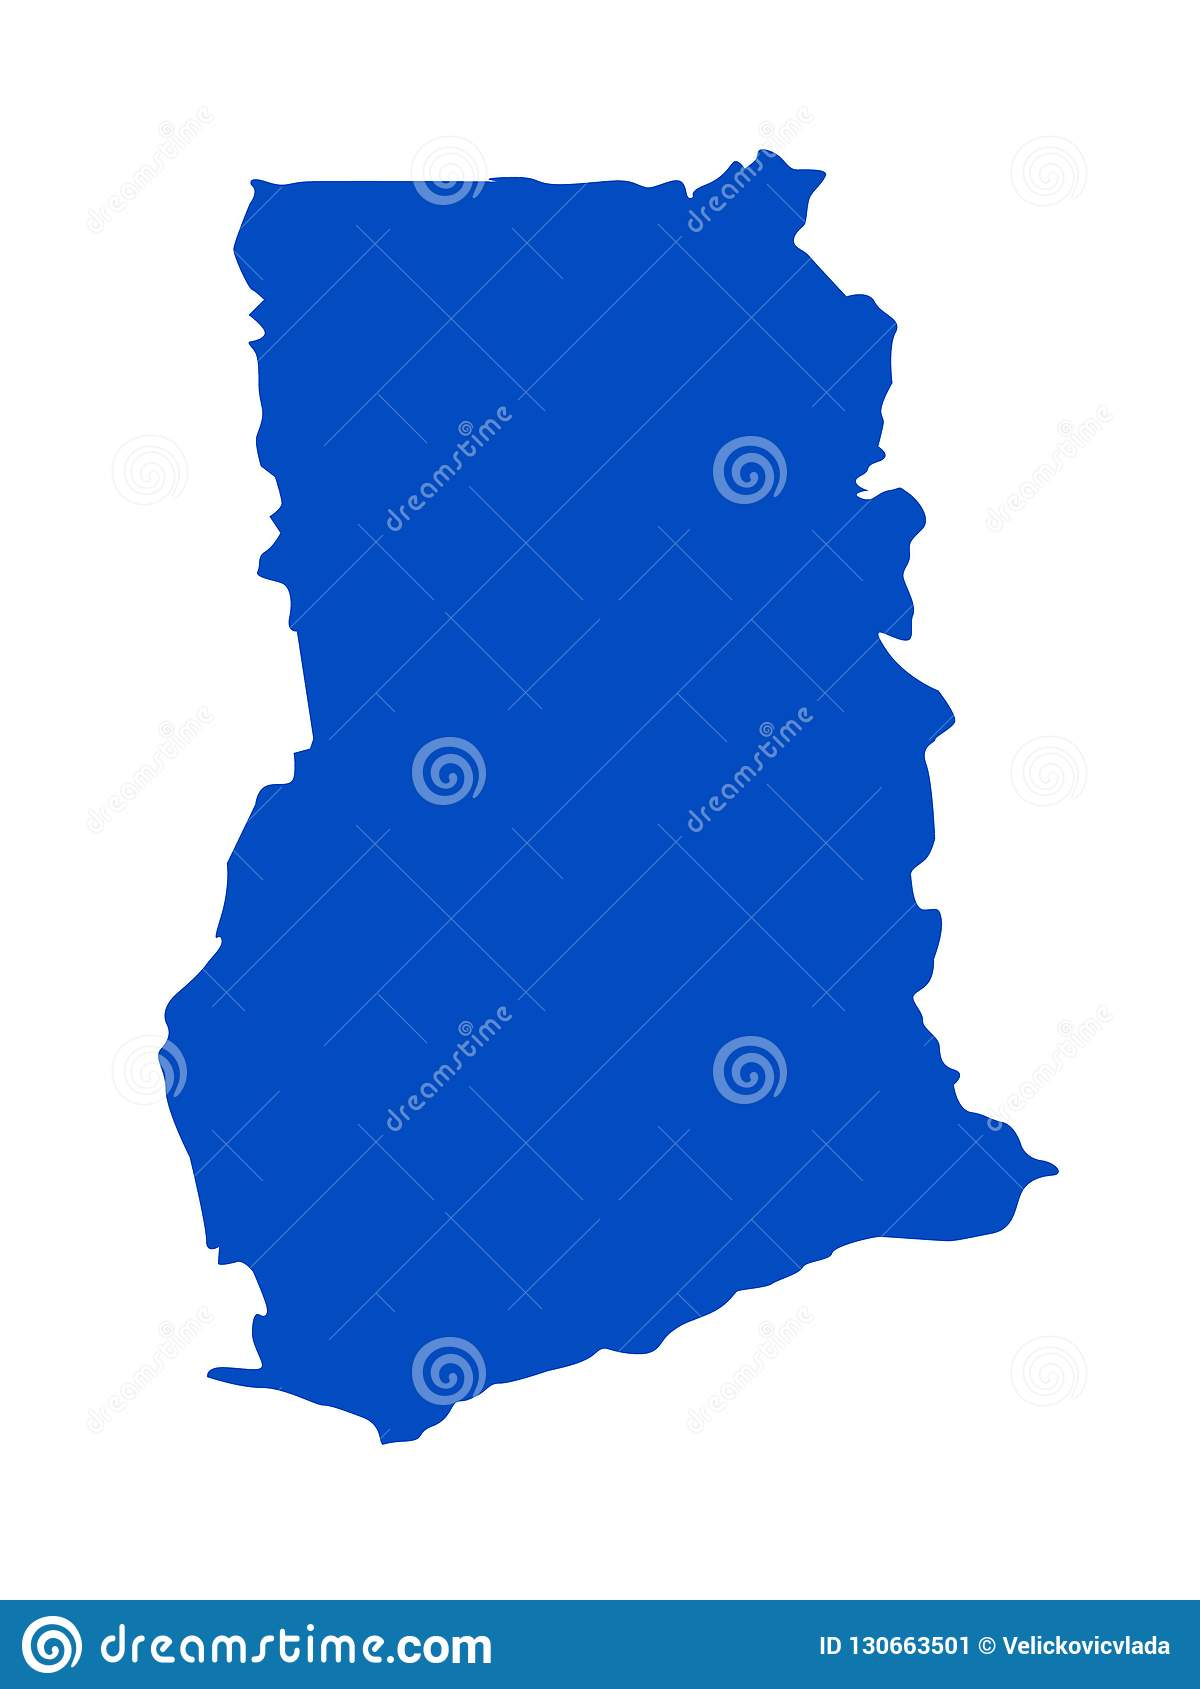 Ghana Map Country In The West Africa Stock Vector Illustration Of Silhouette Topography 130663501